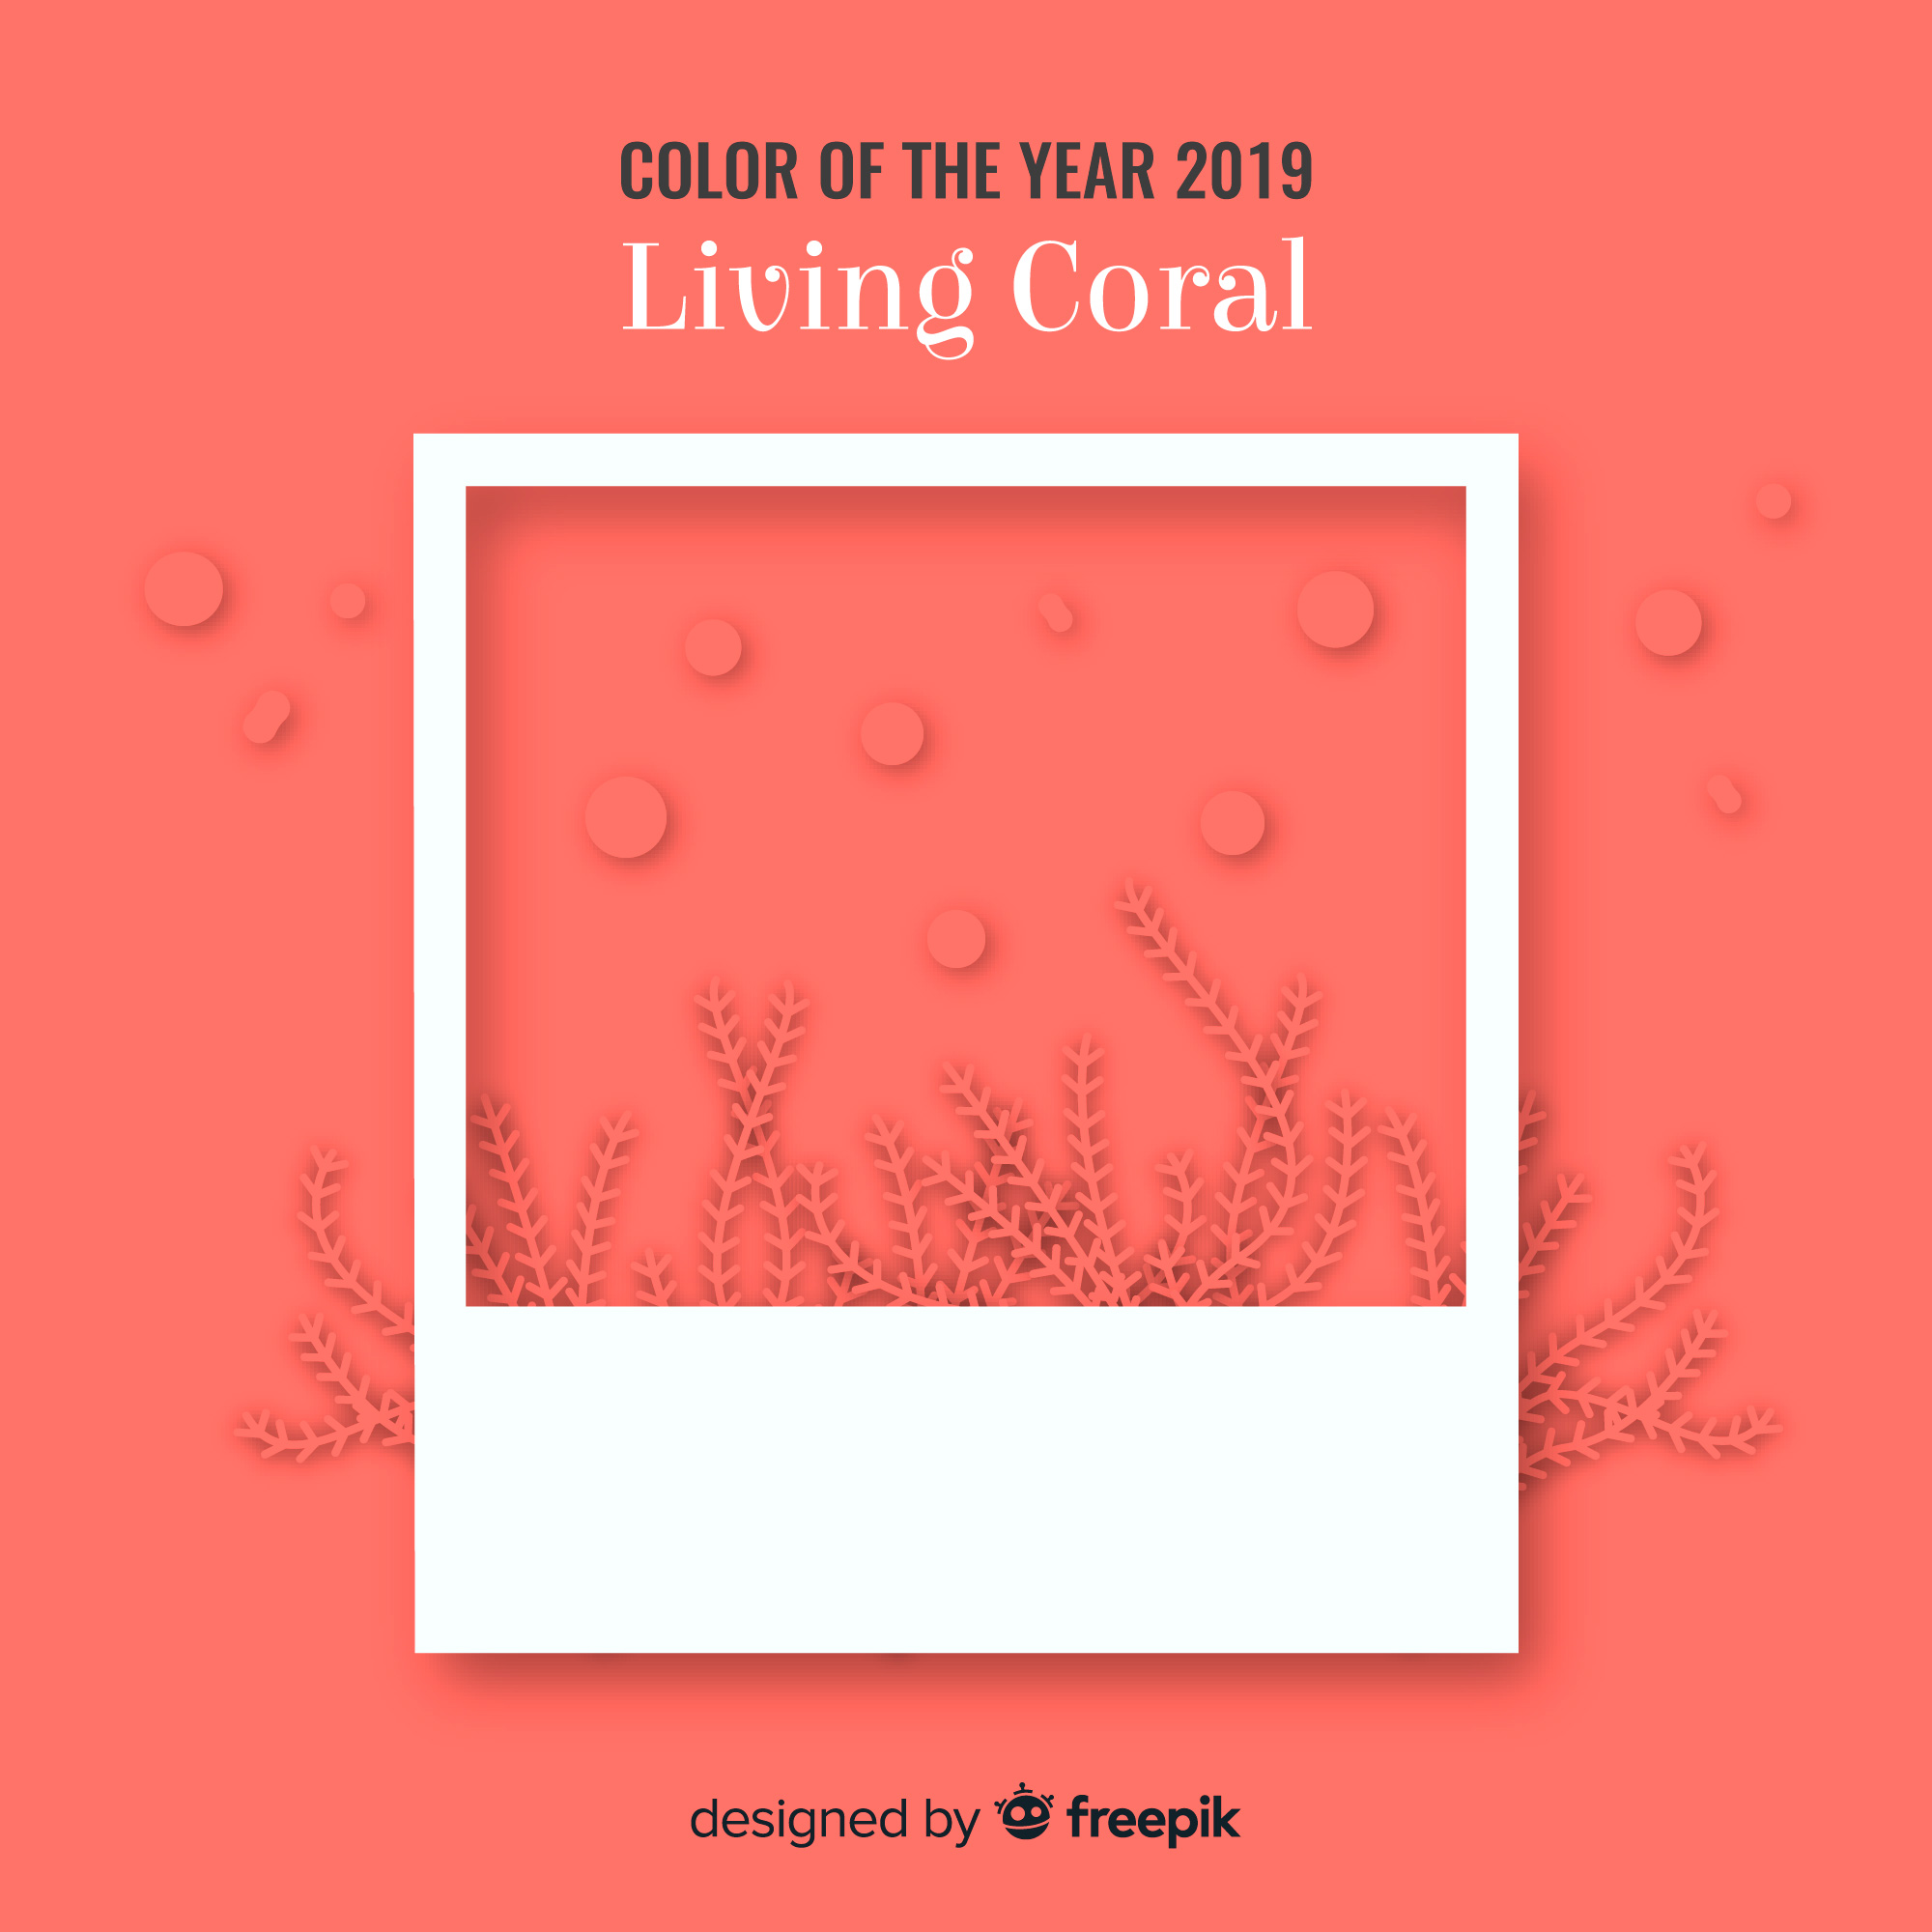 [Vol.81]Who Decides 'Color of the Year'